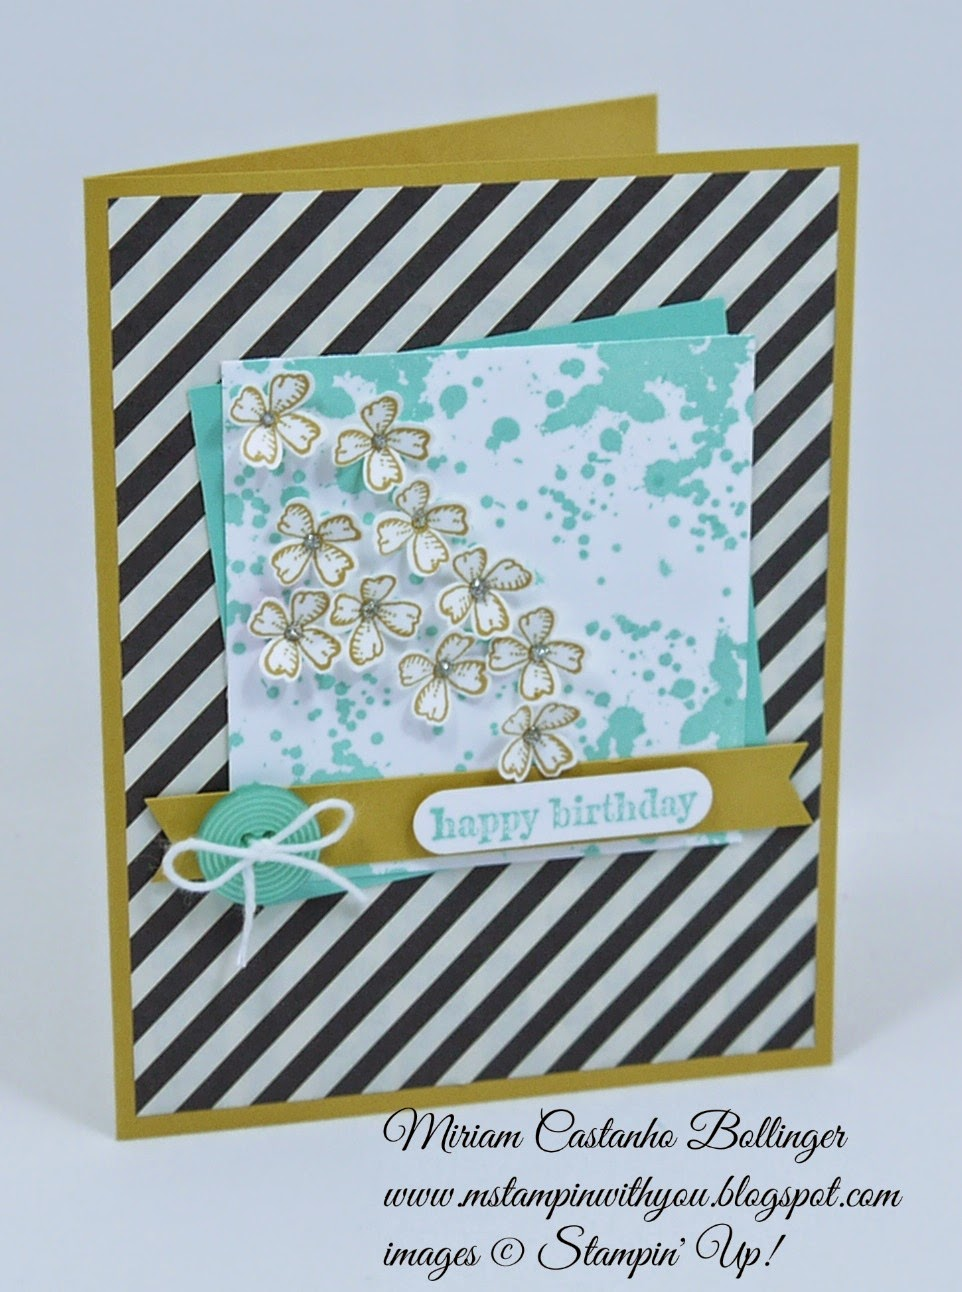 Miriam Castanho Bollinger, mstampinwithyou, stampin up, demonstrator, rs146, typeset specialty DSP, something to say stamp set, gorgeous grunge stamp set, word window, itty bitty accents punch, best year ever accessory pack, su